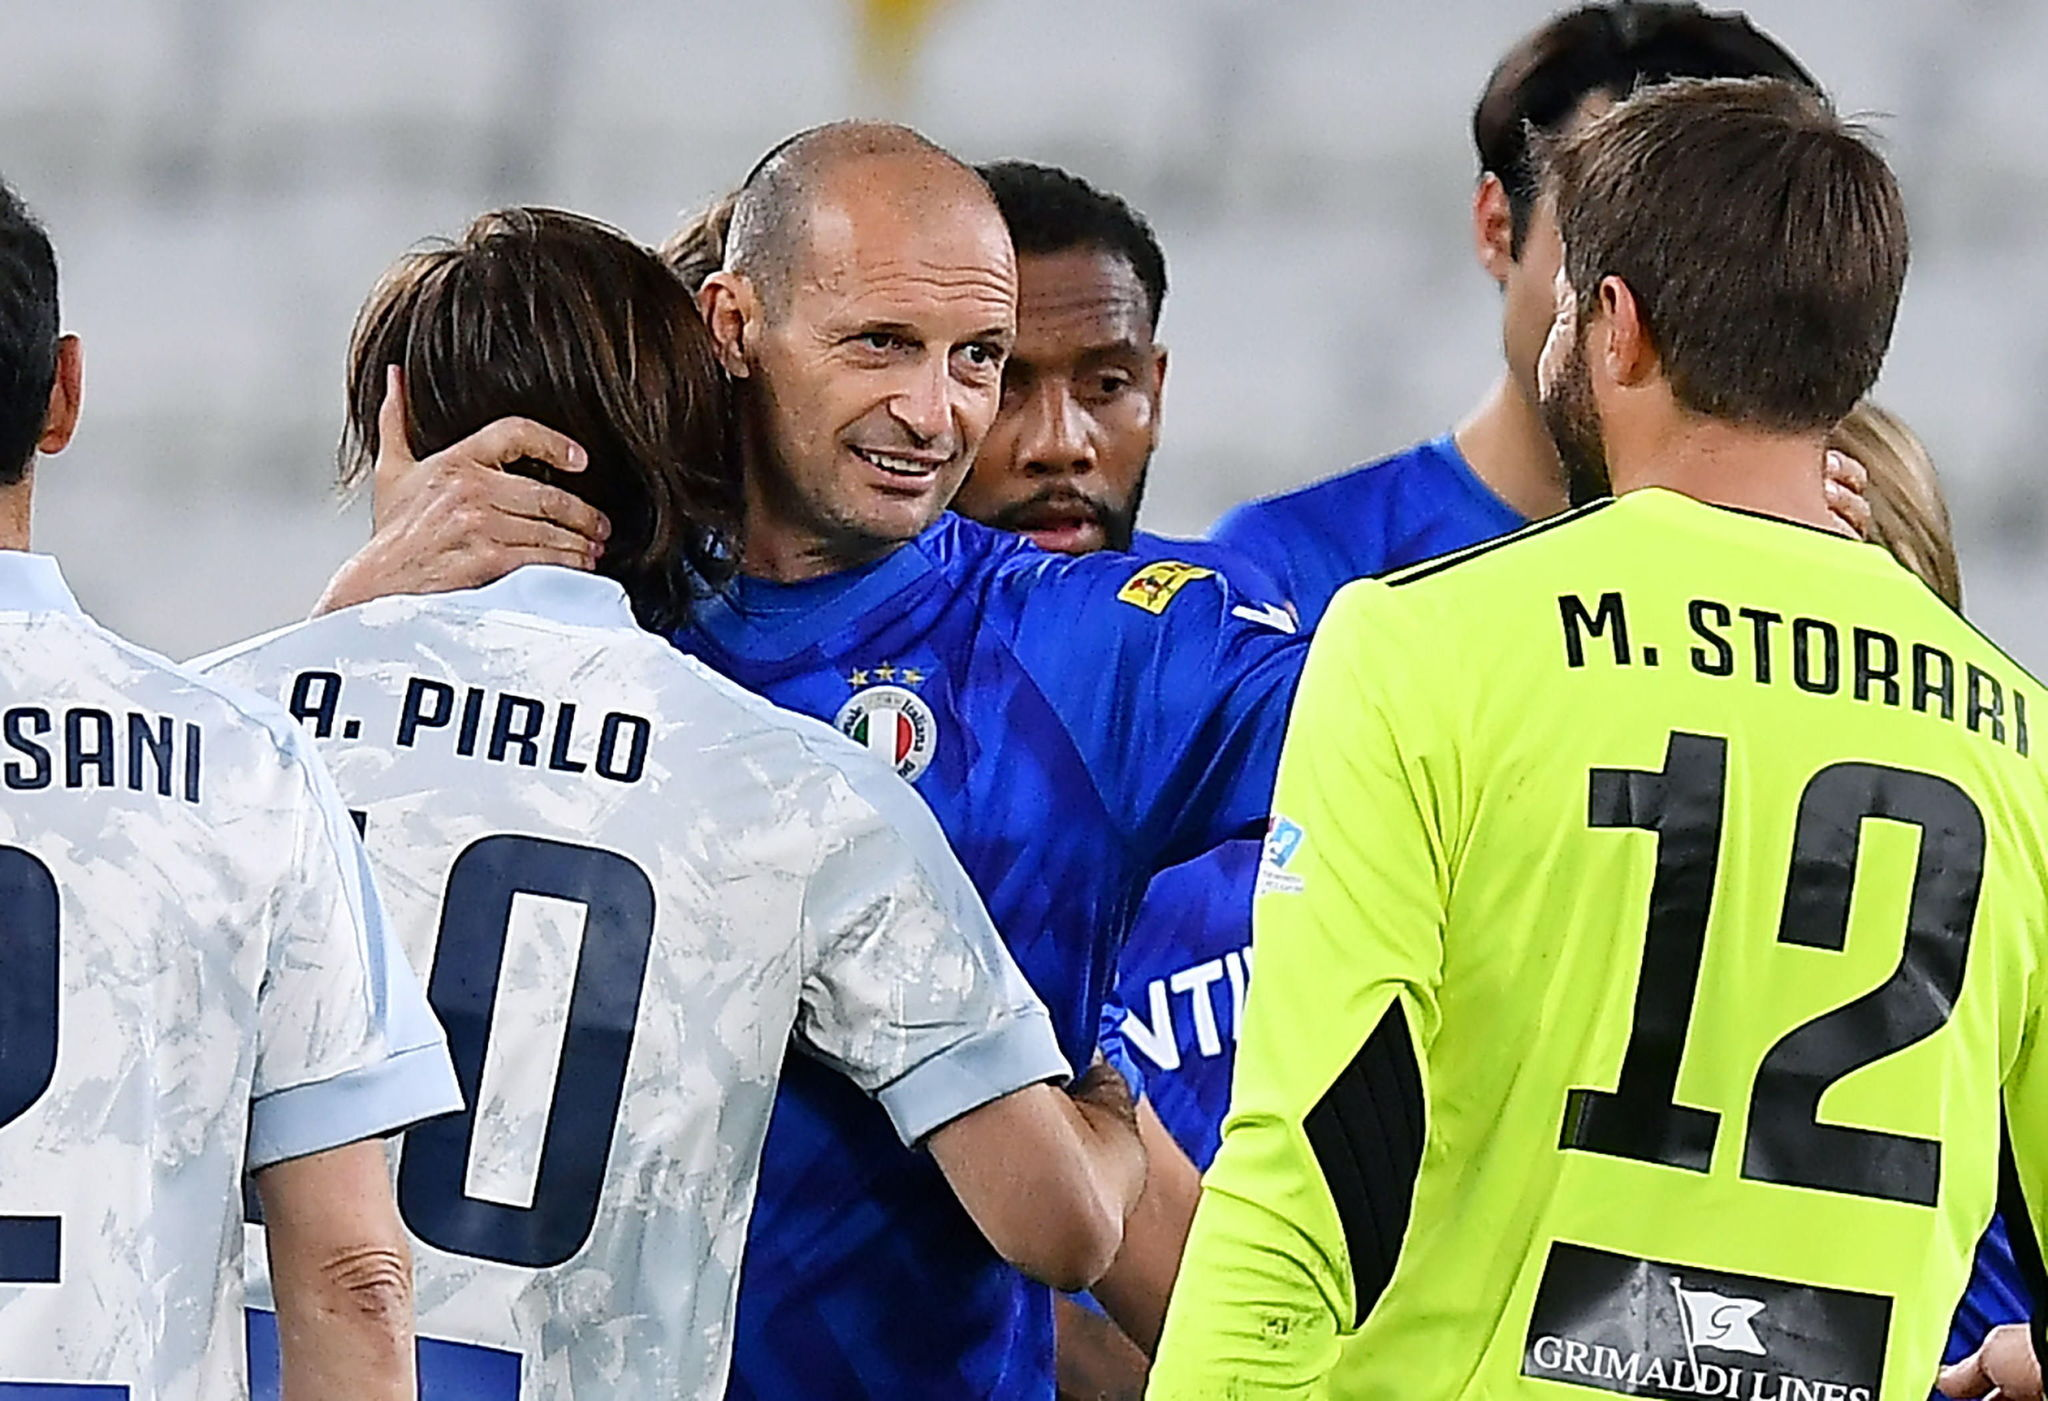 Turin (Italy), 25/05/2021.- Former Juventus' coach Massimiliano lt;HIT gt;Allegri lt;/HIT gt; (C) with Juventus' coach Andrea Pirlo and Juventus' goalkeeper Marco Storari during the 2021 'Partita del Cuore' (Match of the Heart) charity soccer match between the 'Nazionale Cantanti' (Singers national team) and 'Campioni per la Ricerca' (Research champions) at the Allianz Stadium in Turin, Italy, 25 May 2021. (Italia) EFE/EPA/ALESSANDRO DI MARCO